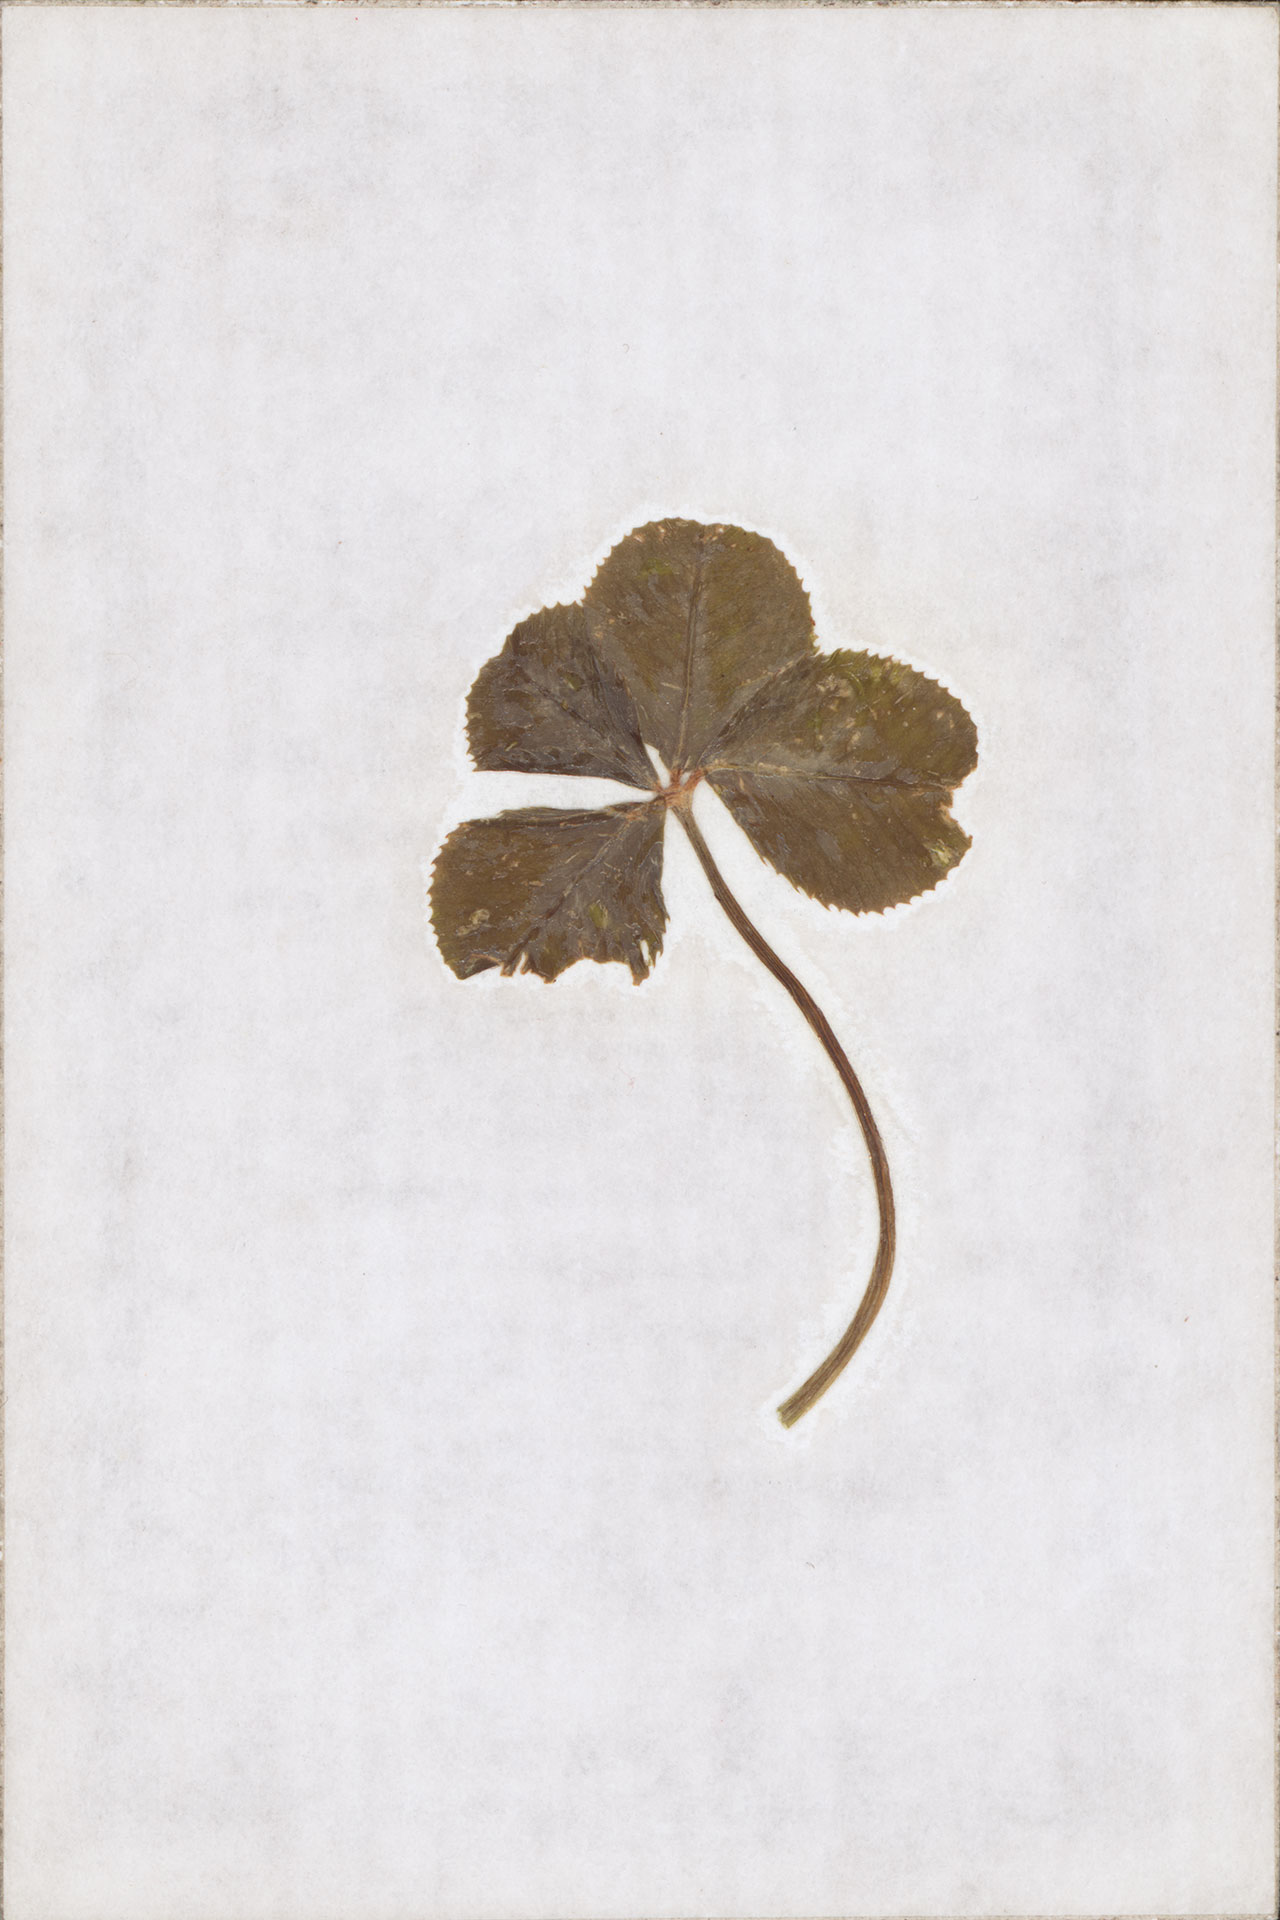 A four-leaf clover, a rare variation of the common three-leaf clover that Jacques Arpels considered a lucky charm. ©Van Cleef& Arpels.